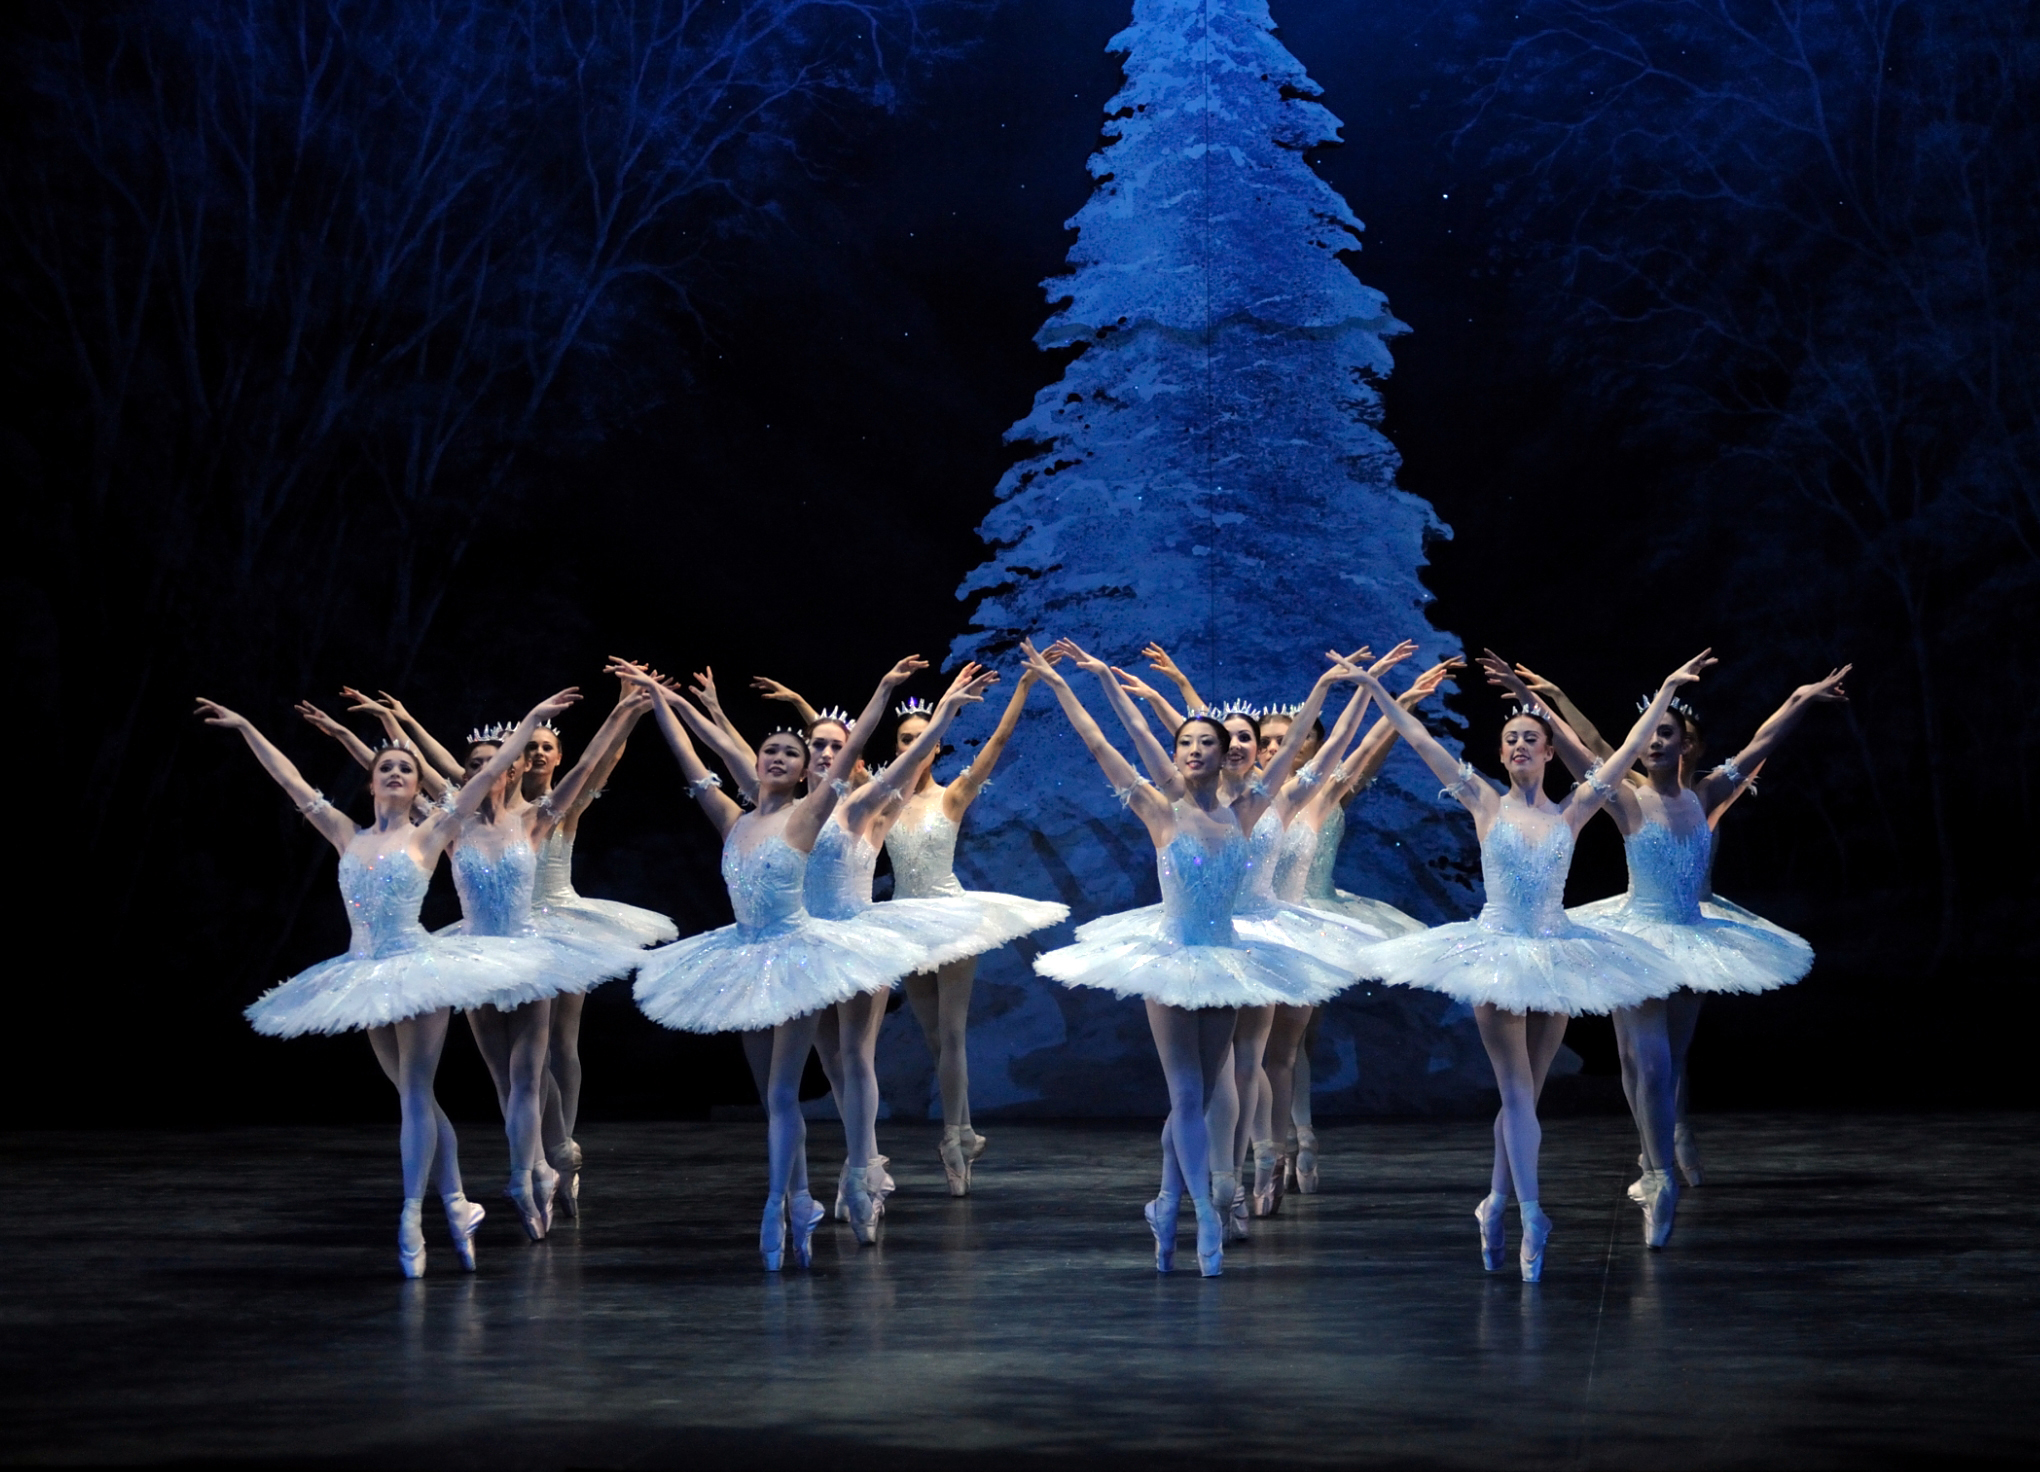 Snowflakes from The Nutcracker in tutus